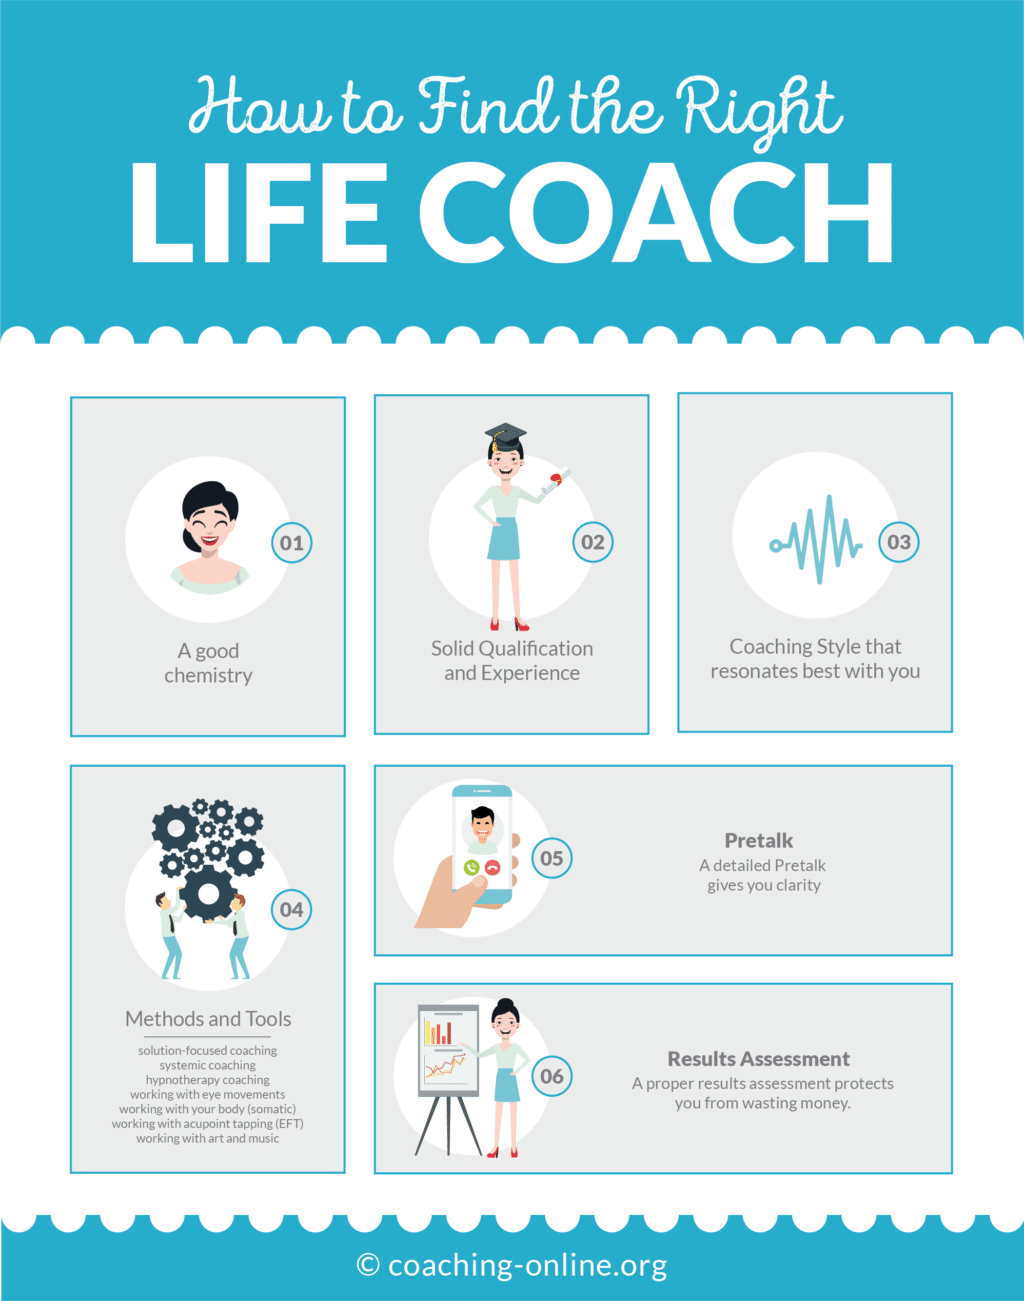 Life Coach – The Complete Guide 2019